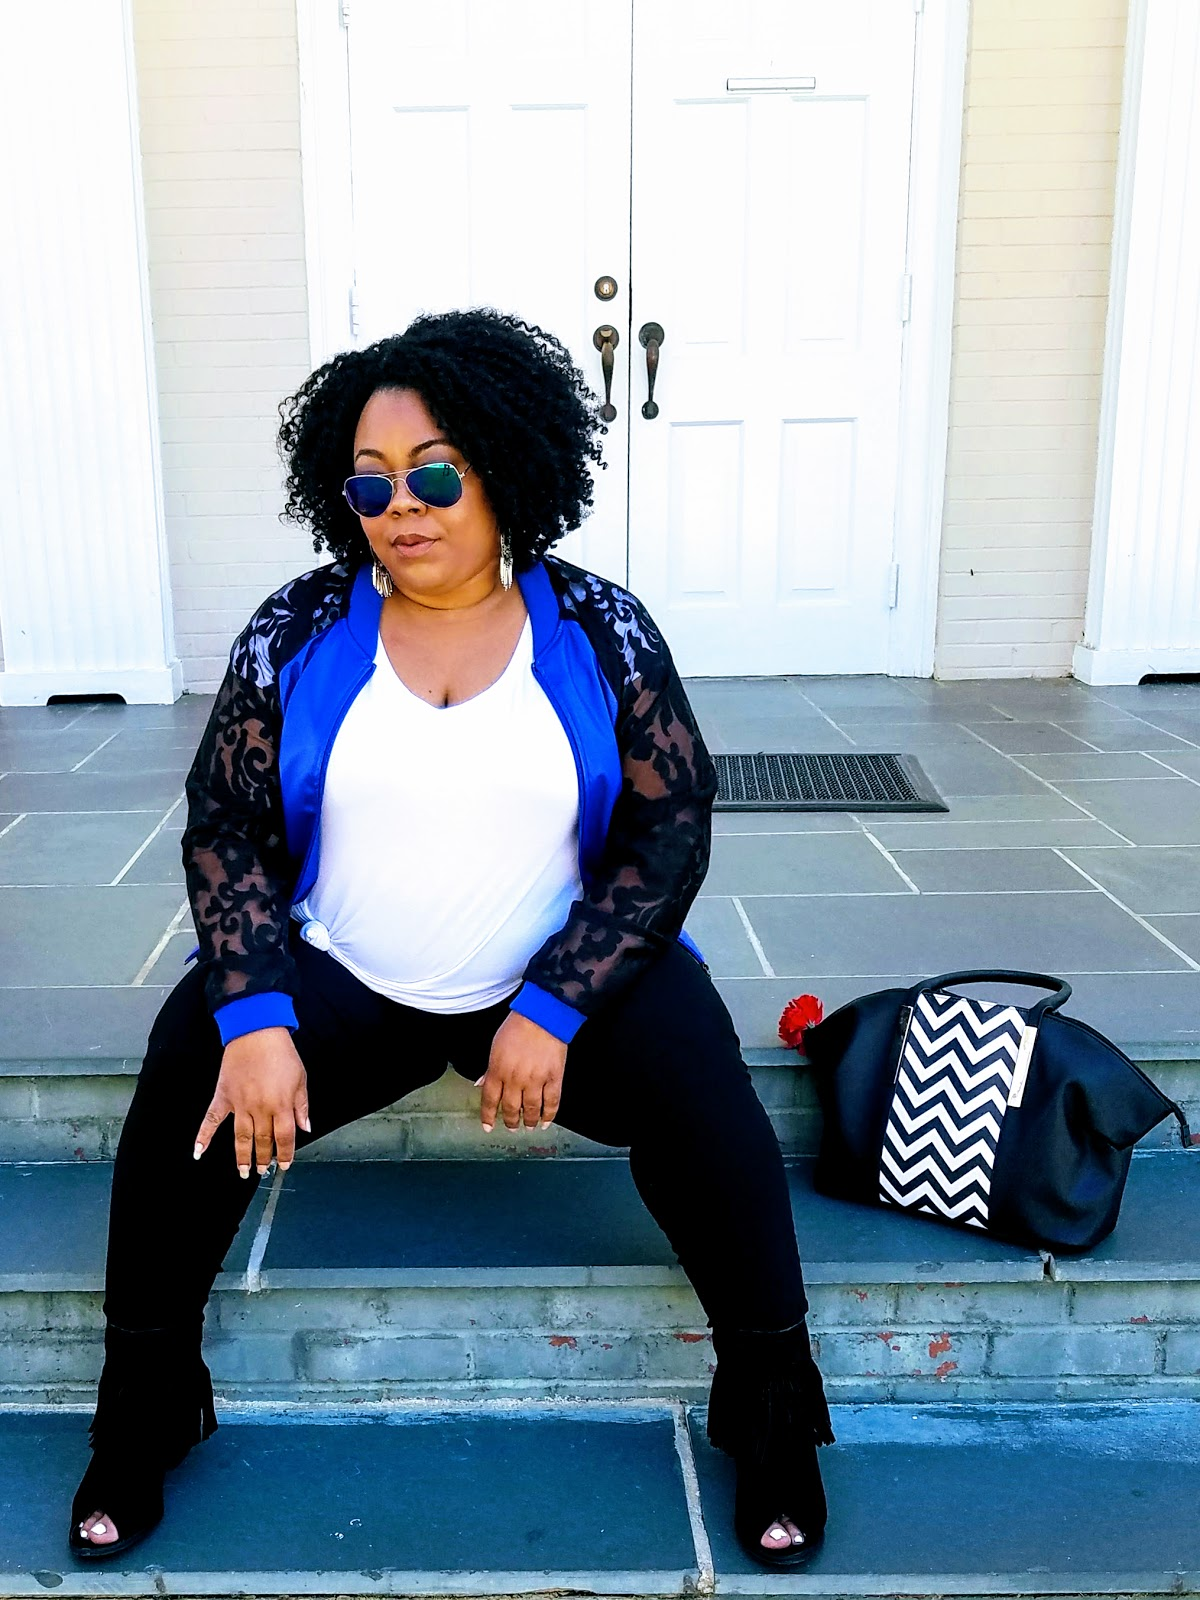 plus size, curvy girl, bomber jacket, floral print, fringe booties, natural hair, skinny jeans, aviator glasses